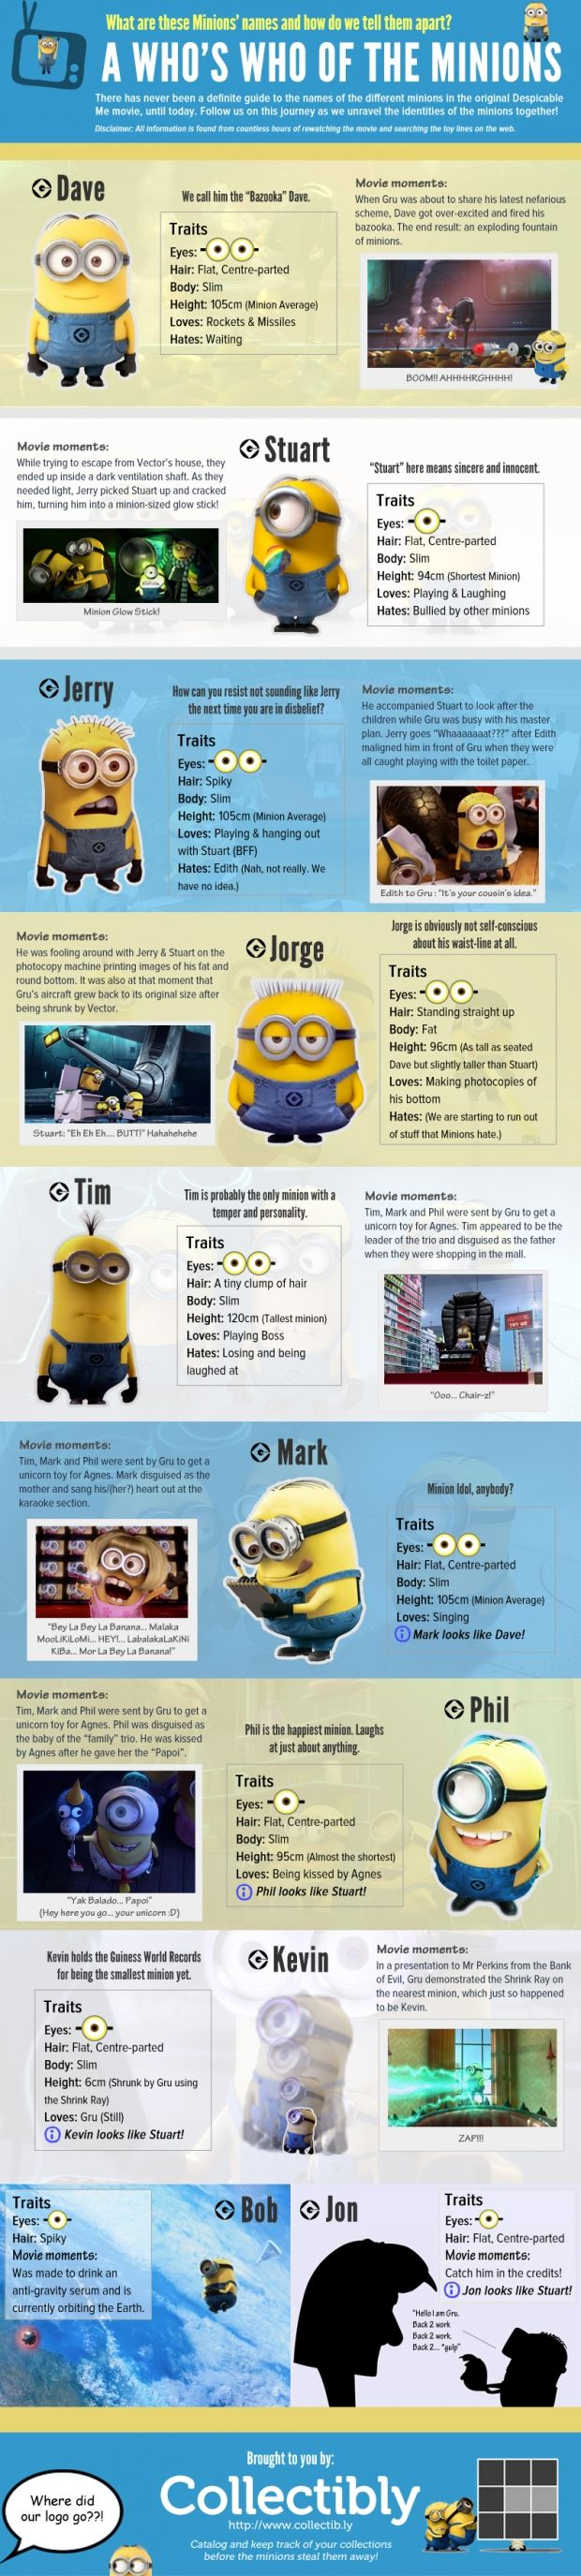 A Who's Who Guide To The Despicable Me Minions